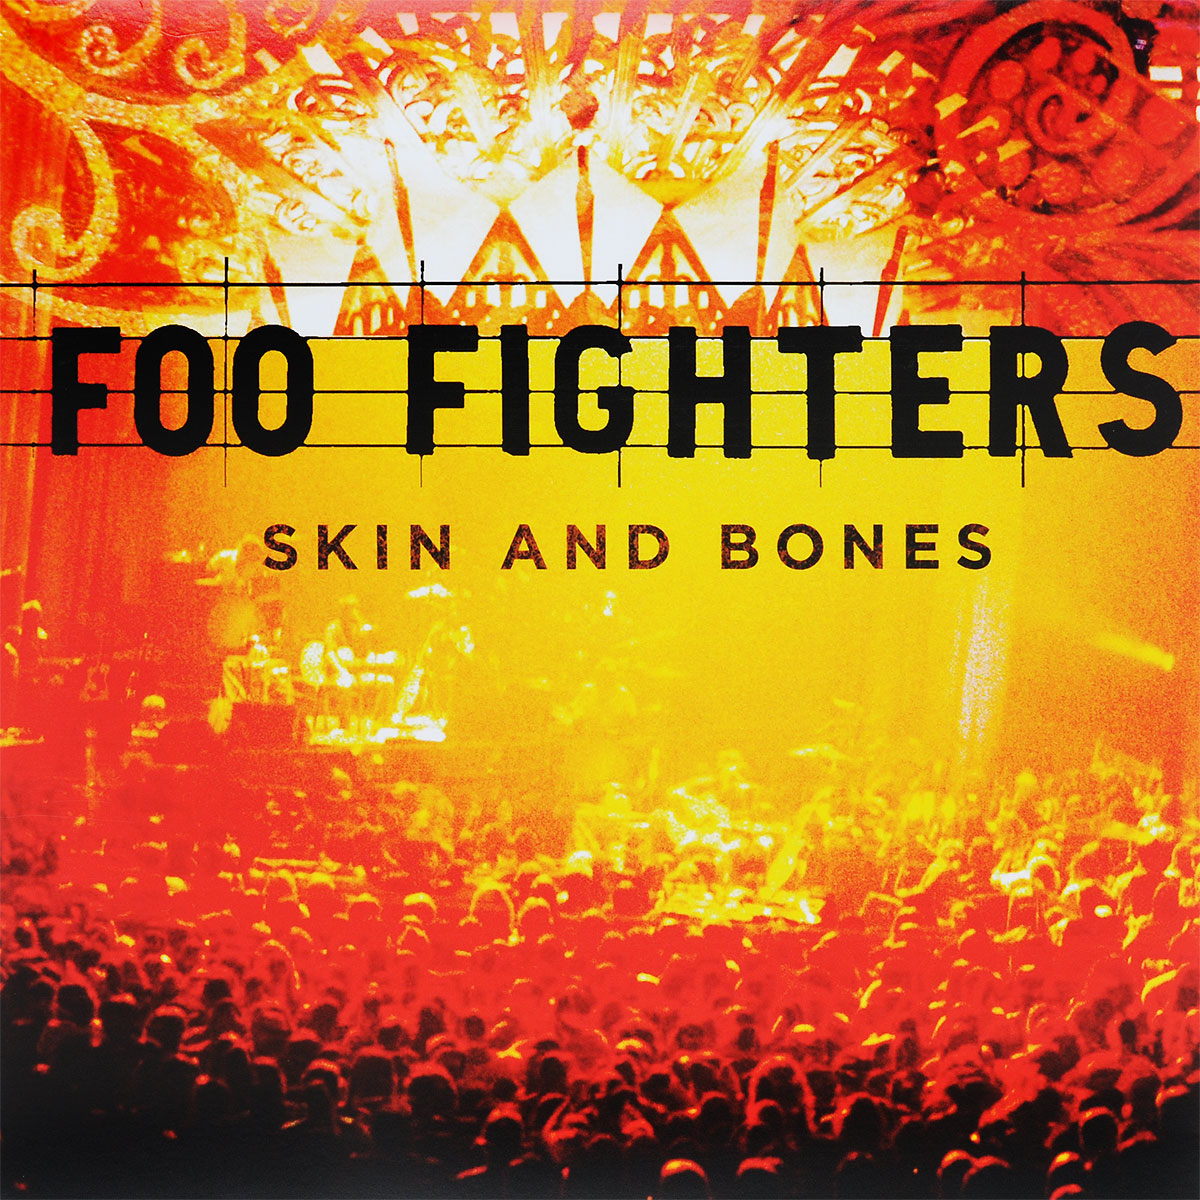 Foo Fighters Foo Fighters. Skin & Bones (2 LP) купальник женский animal phoebe peacoat